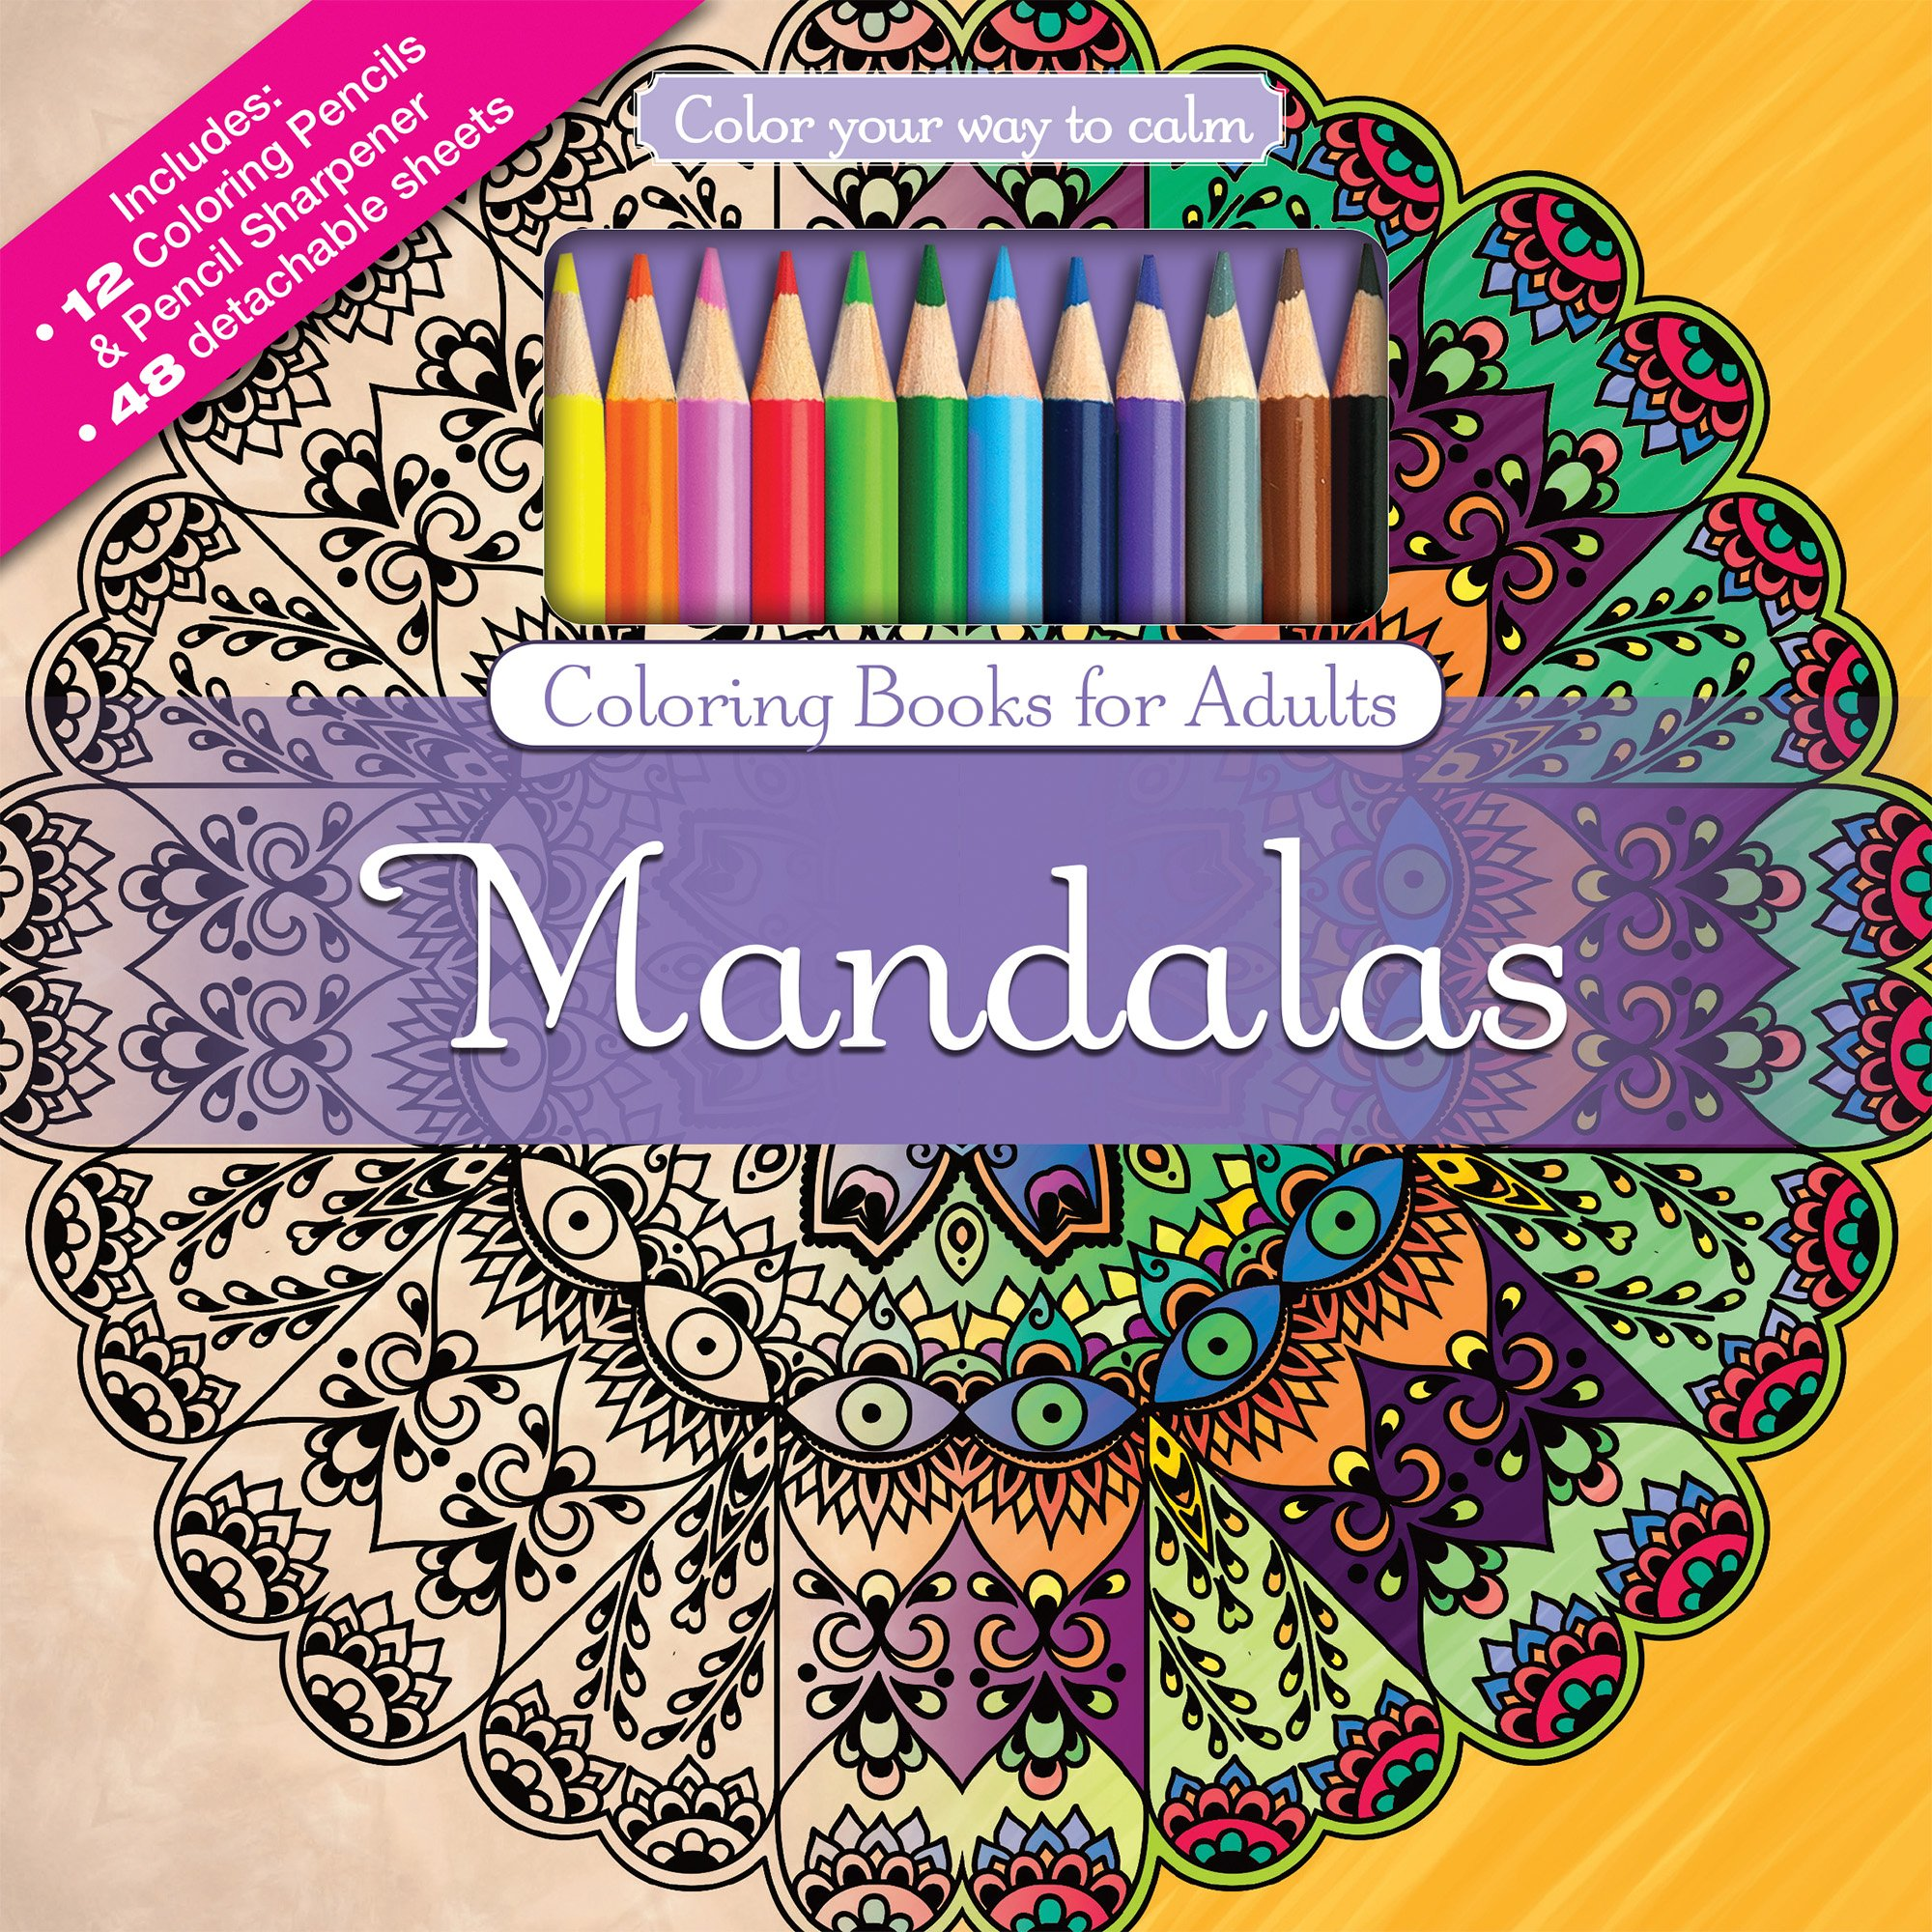 Amazon Mandalas Adult Coloring Book Set With 24 Colored Pencils And Pencil Sharpener Included Color Your Way To Calm 9781988137254 Newbourne Media